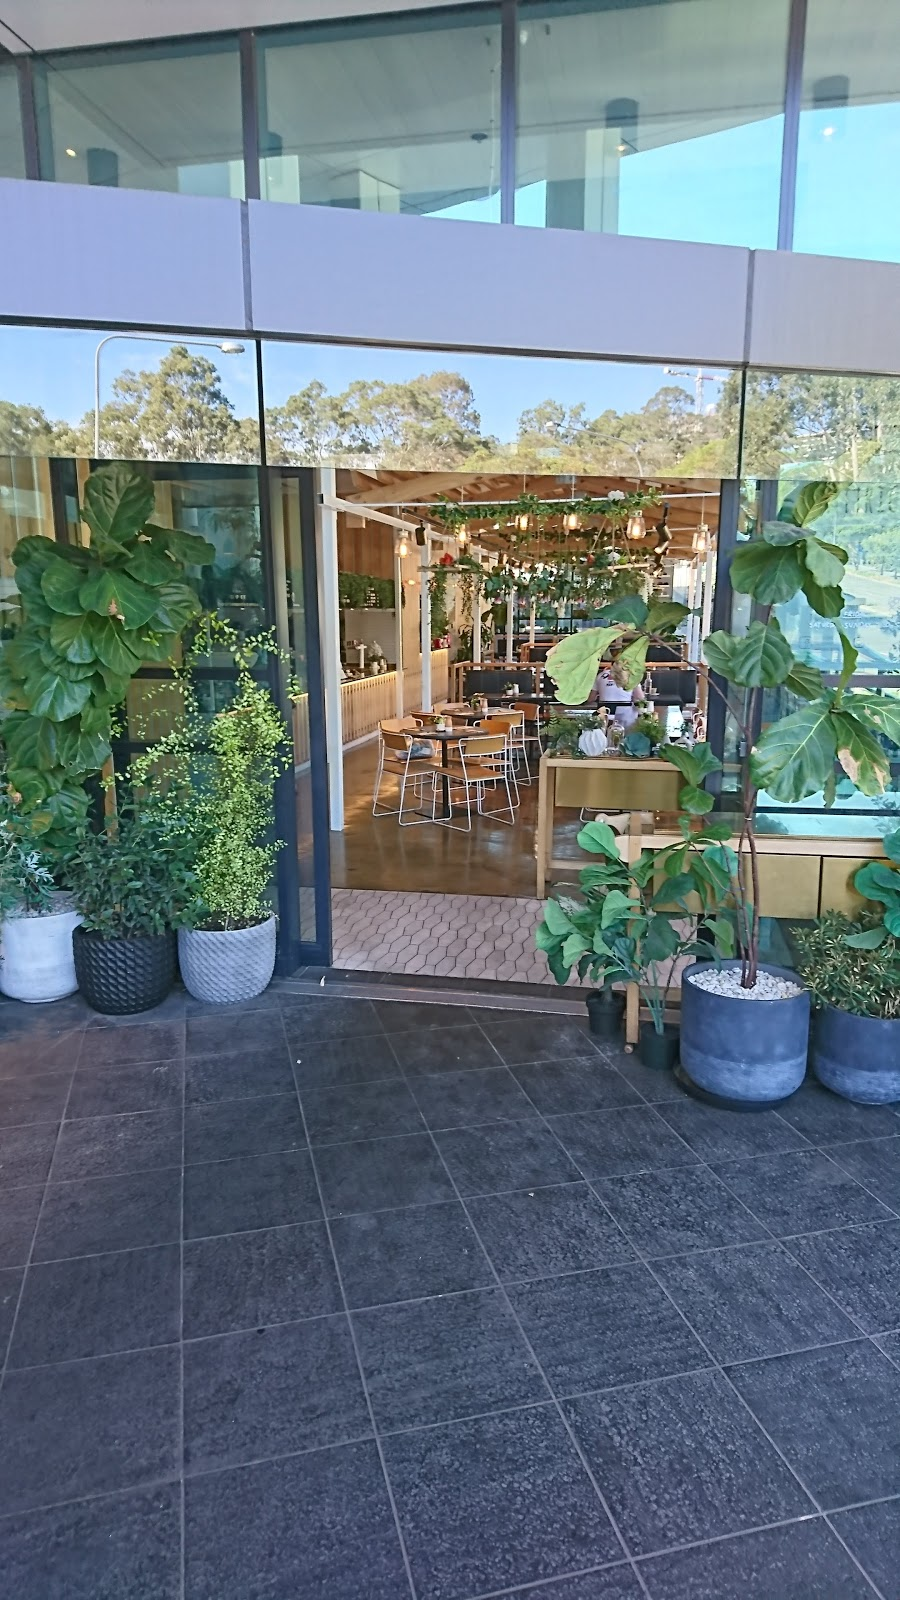 Hattrick | cafe | 84 Waterloo Rd, Macquarie Park NSW 2113, Australia | 0298872592 OR +61 2 9887 2592